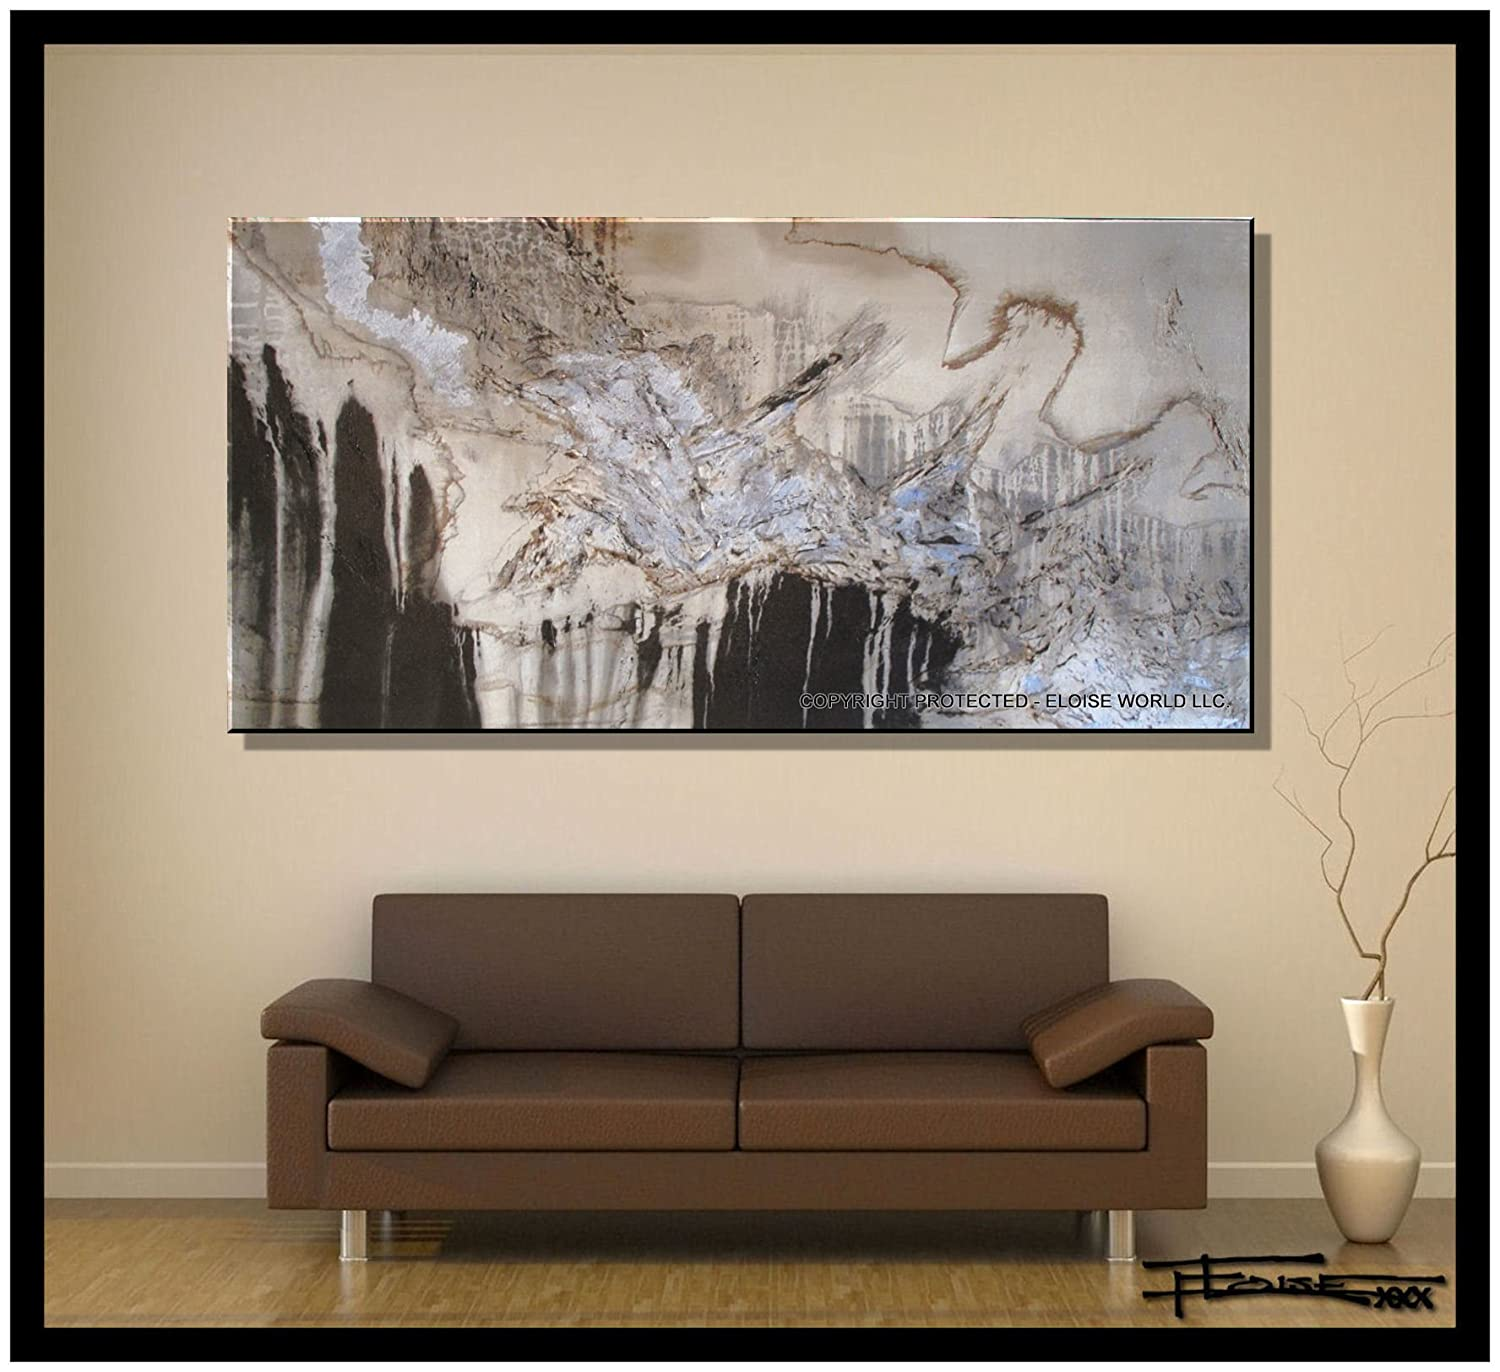 amazoncom xl modern canvas wall art  emerging eagle limited  - amazoncom xl modern canvas wall art  emerging eagle limited editionhand embellished giclee on canvas textured abstract painting  x  x oil